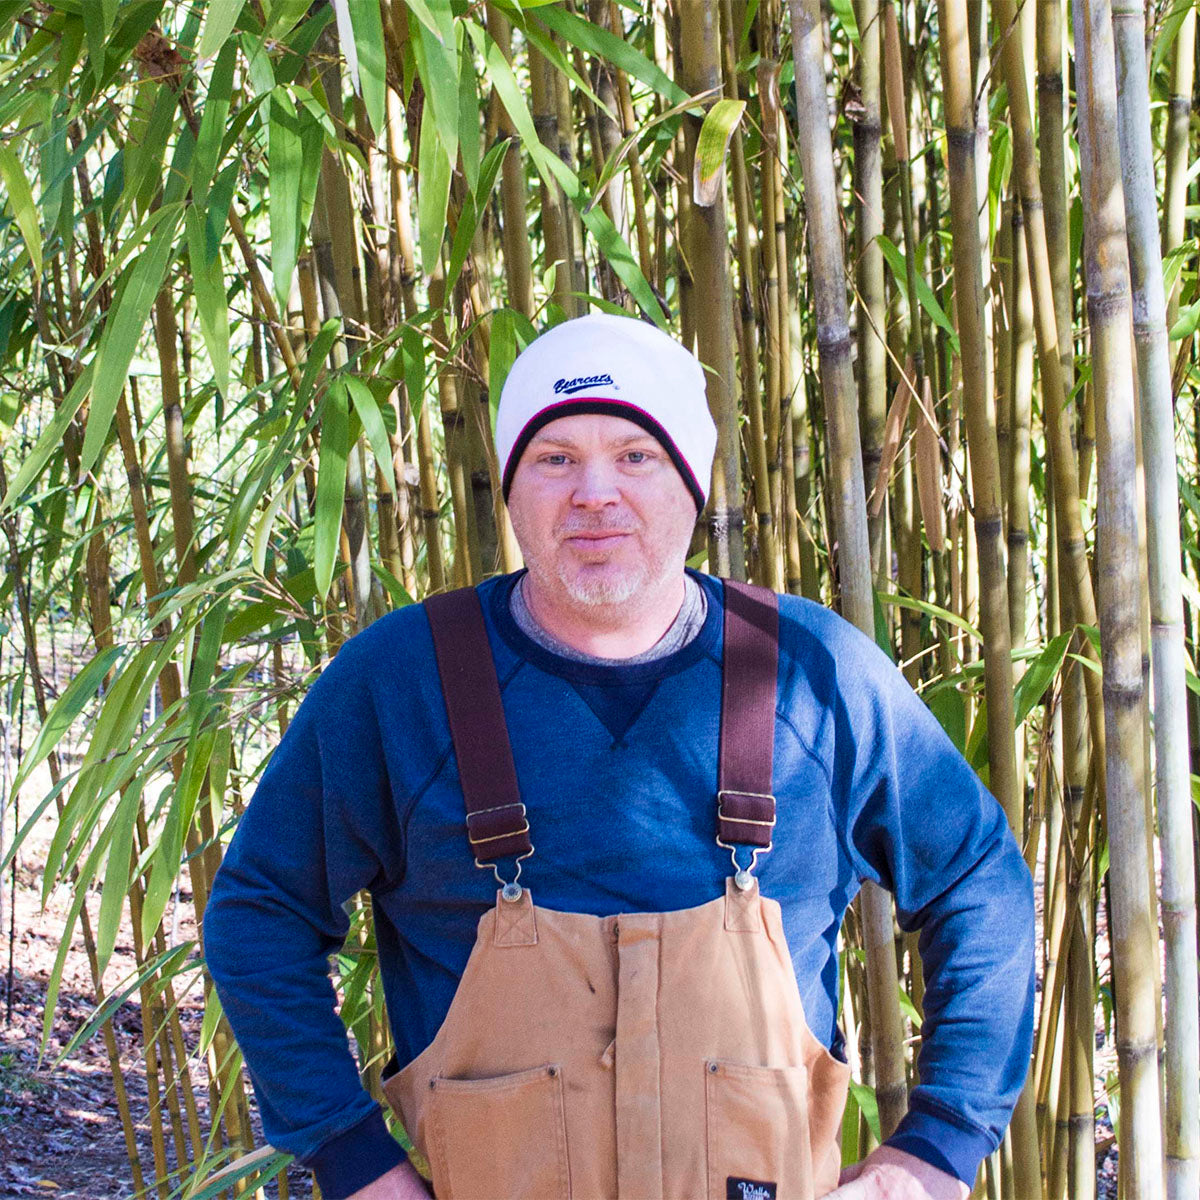 Nursery Manager of Lewis Bamboo - Greg Brown